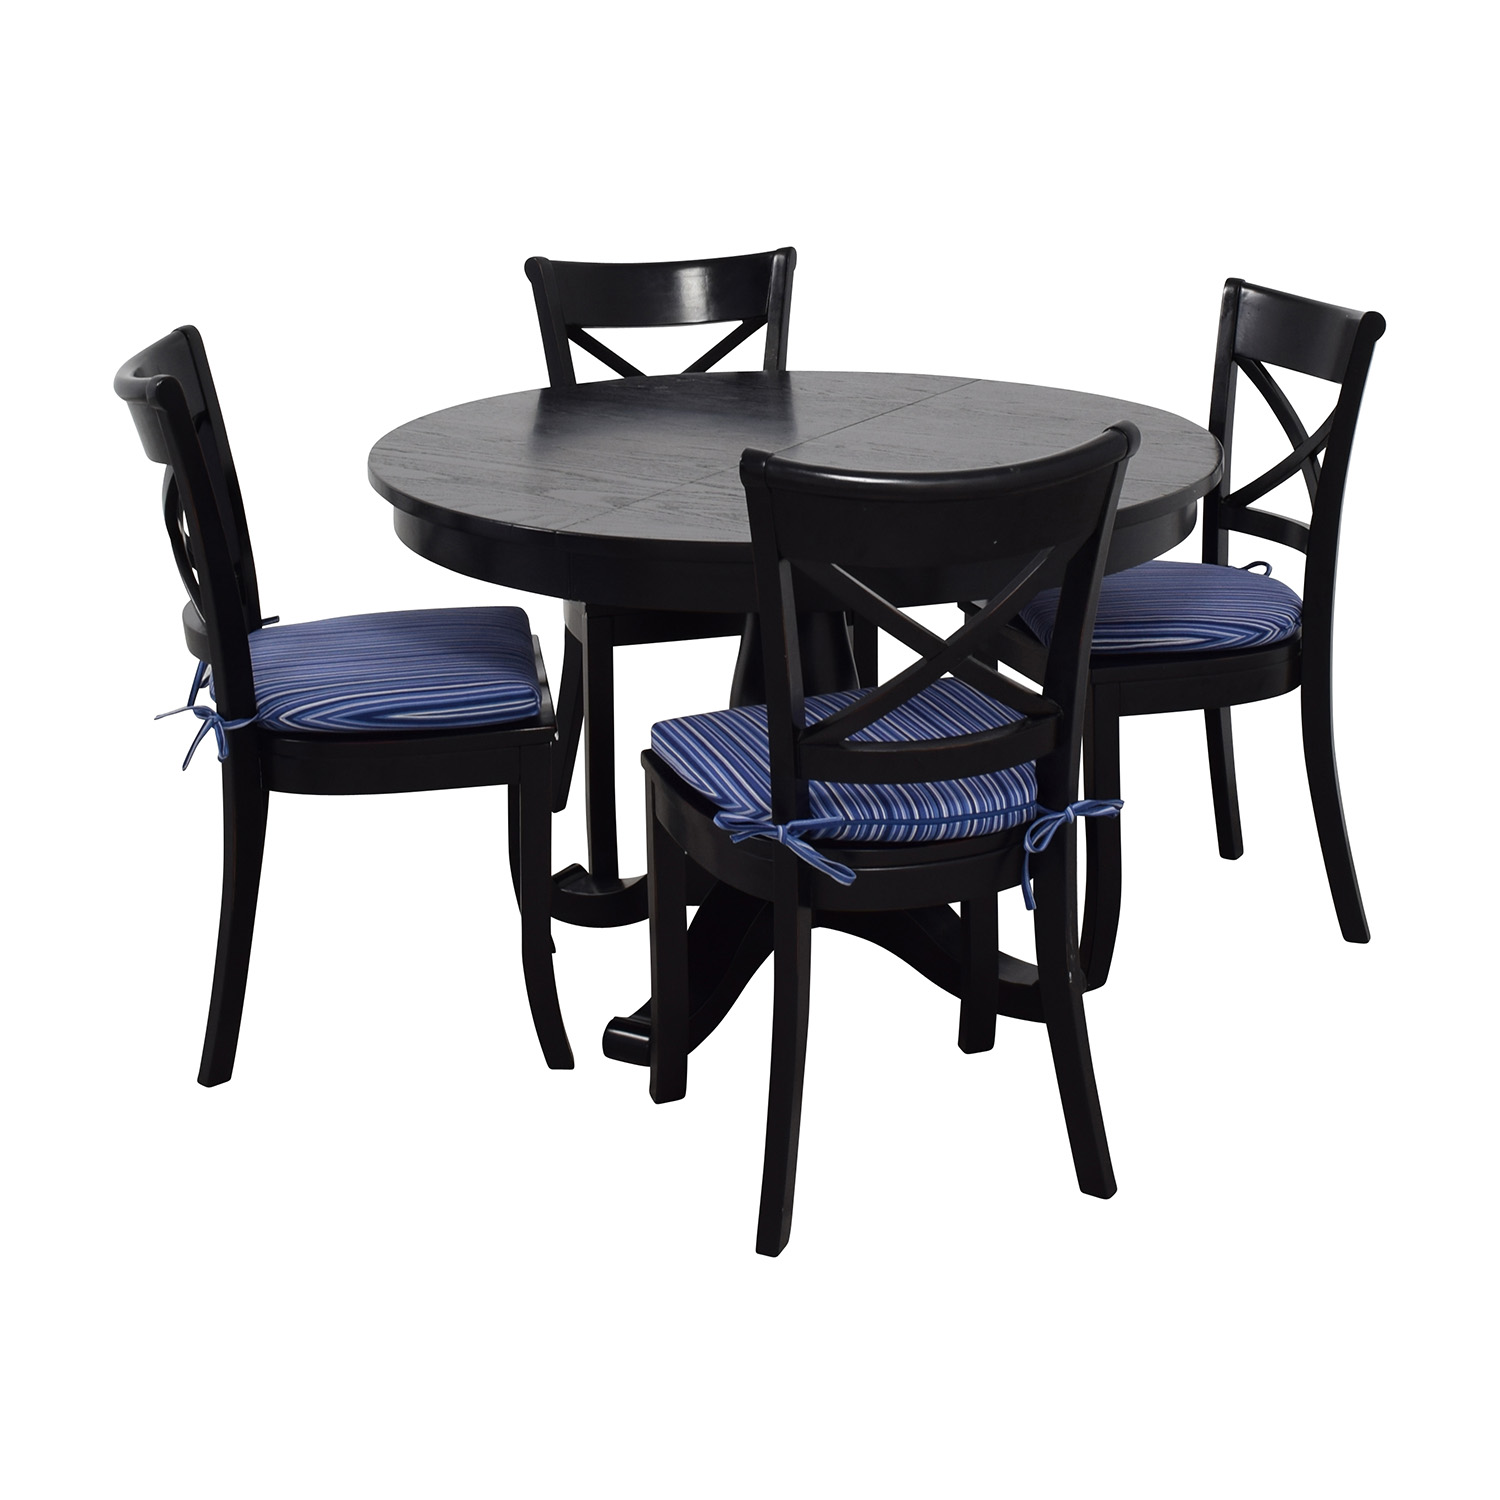 60 OFF Crate Barrel Crate Barrel Table And Chairs